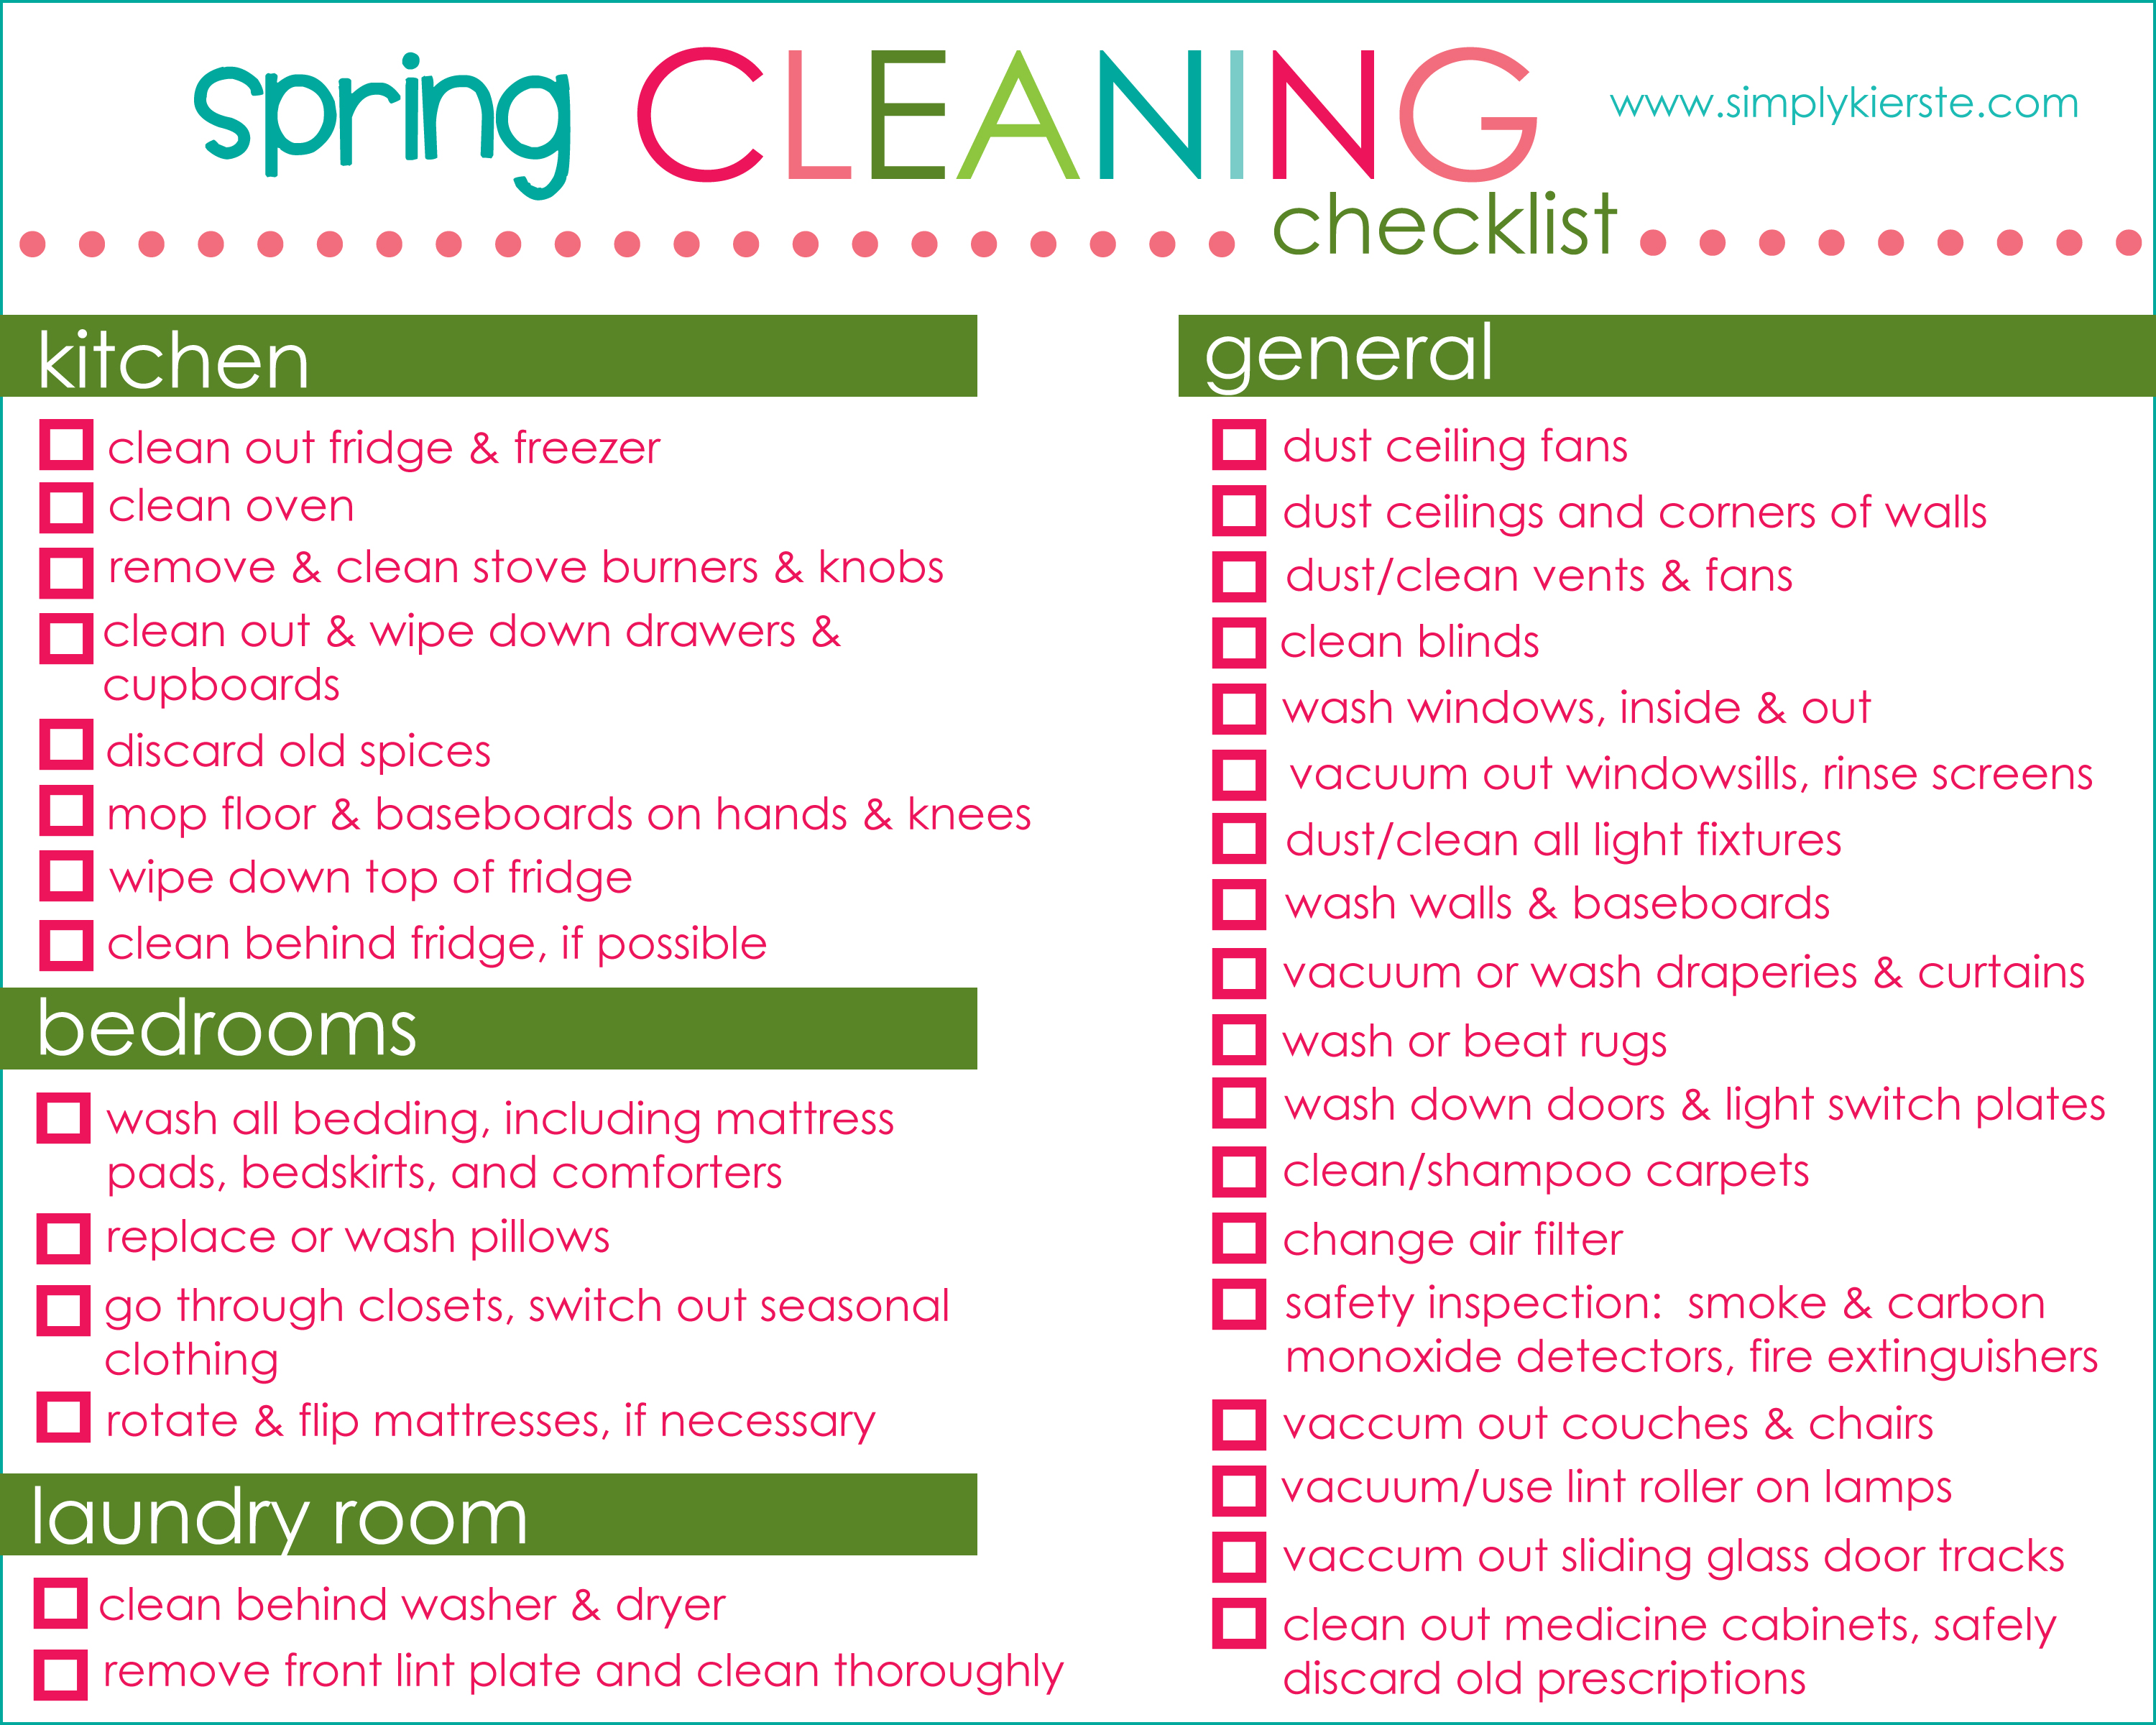 Spring Cleaning Checklist Outside